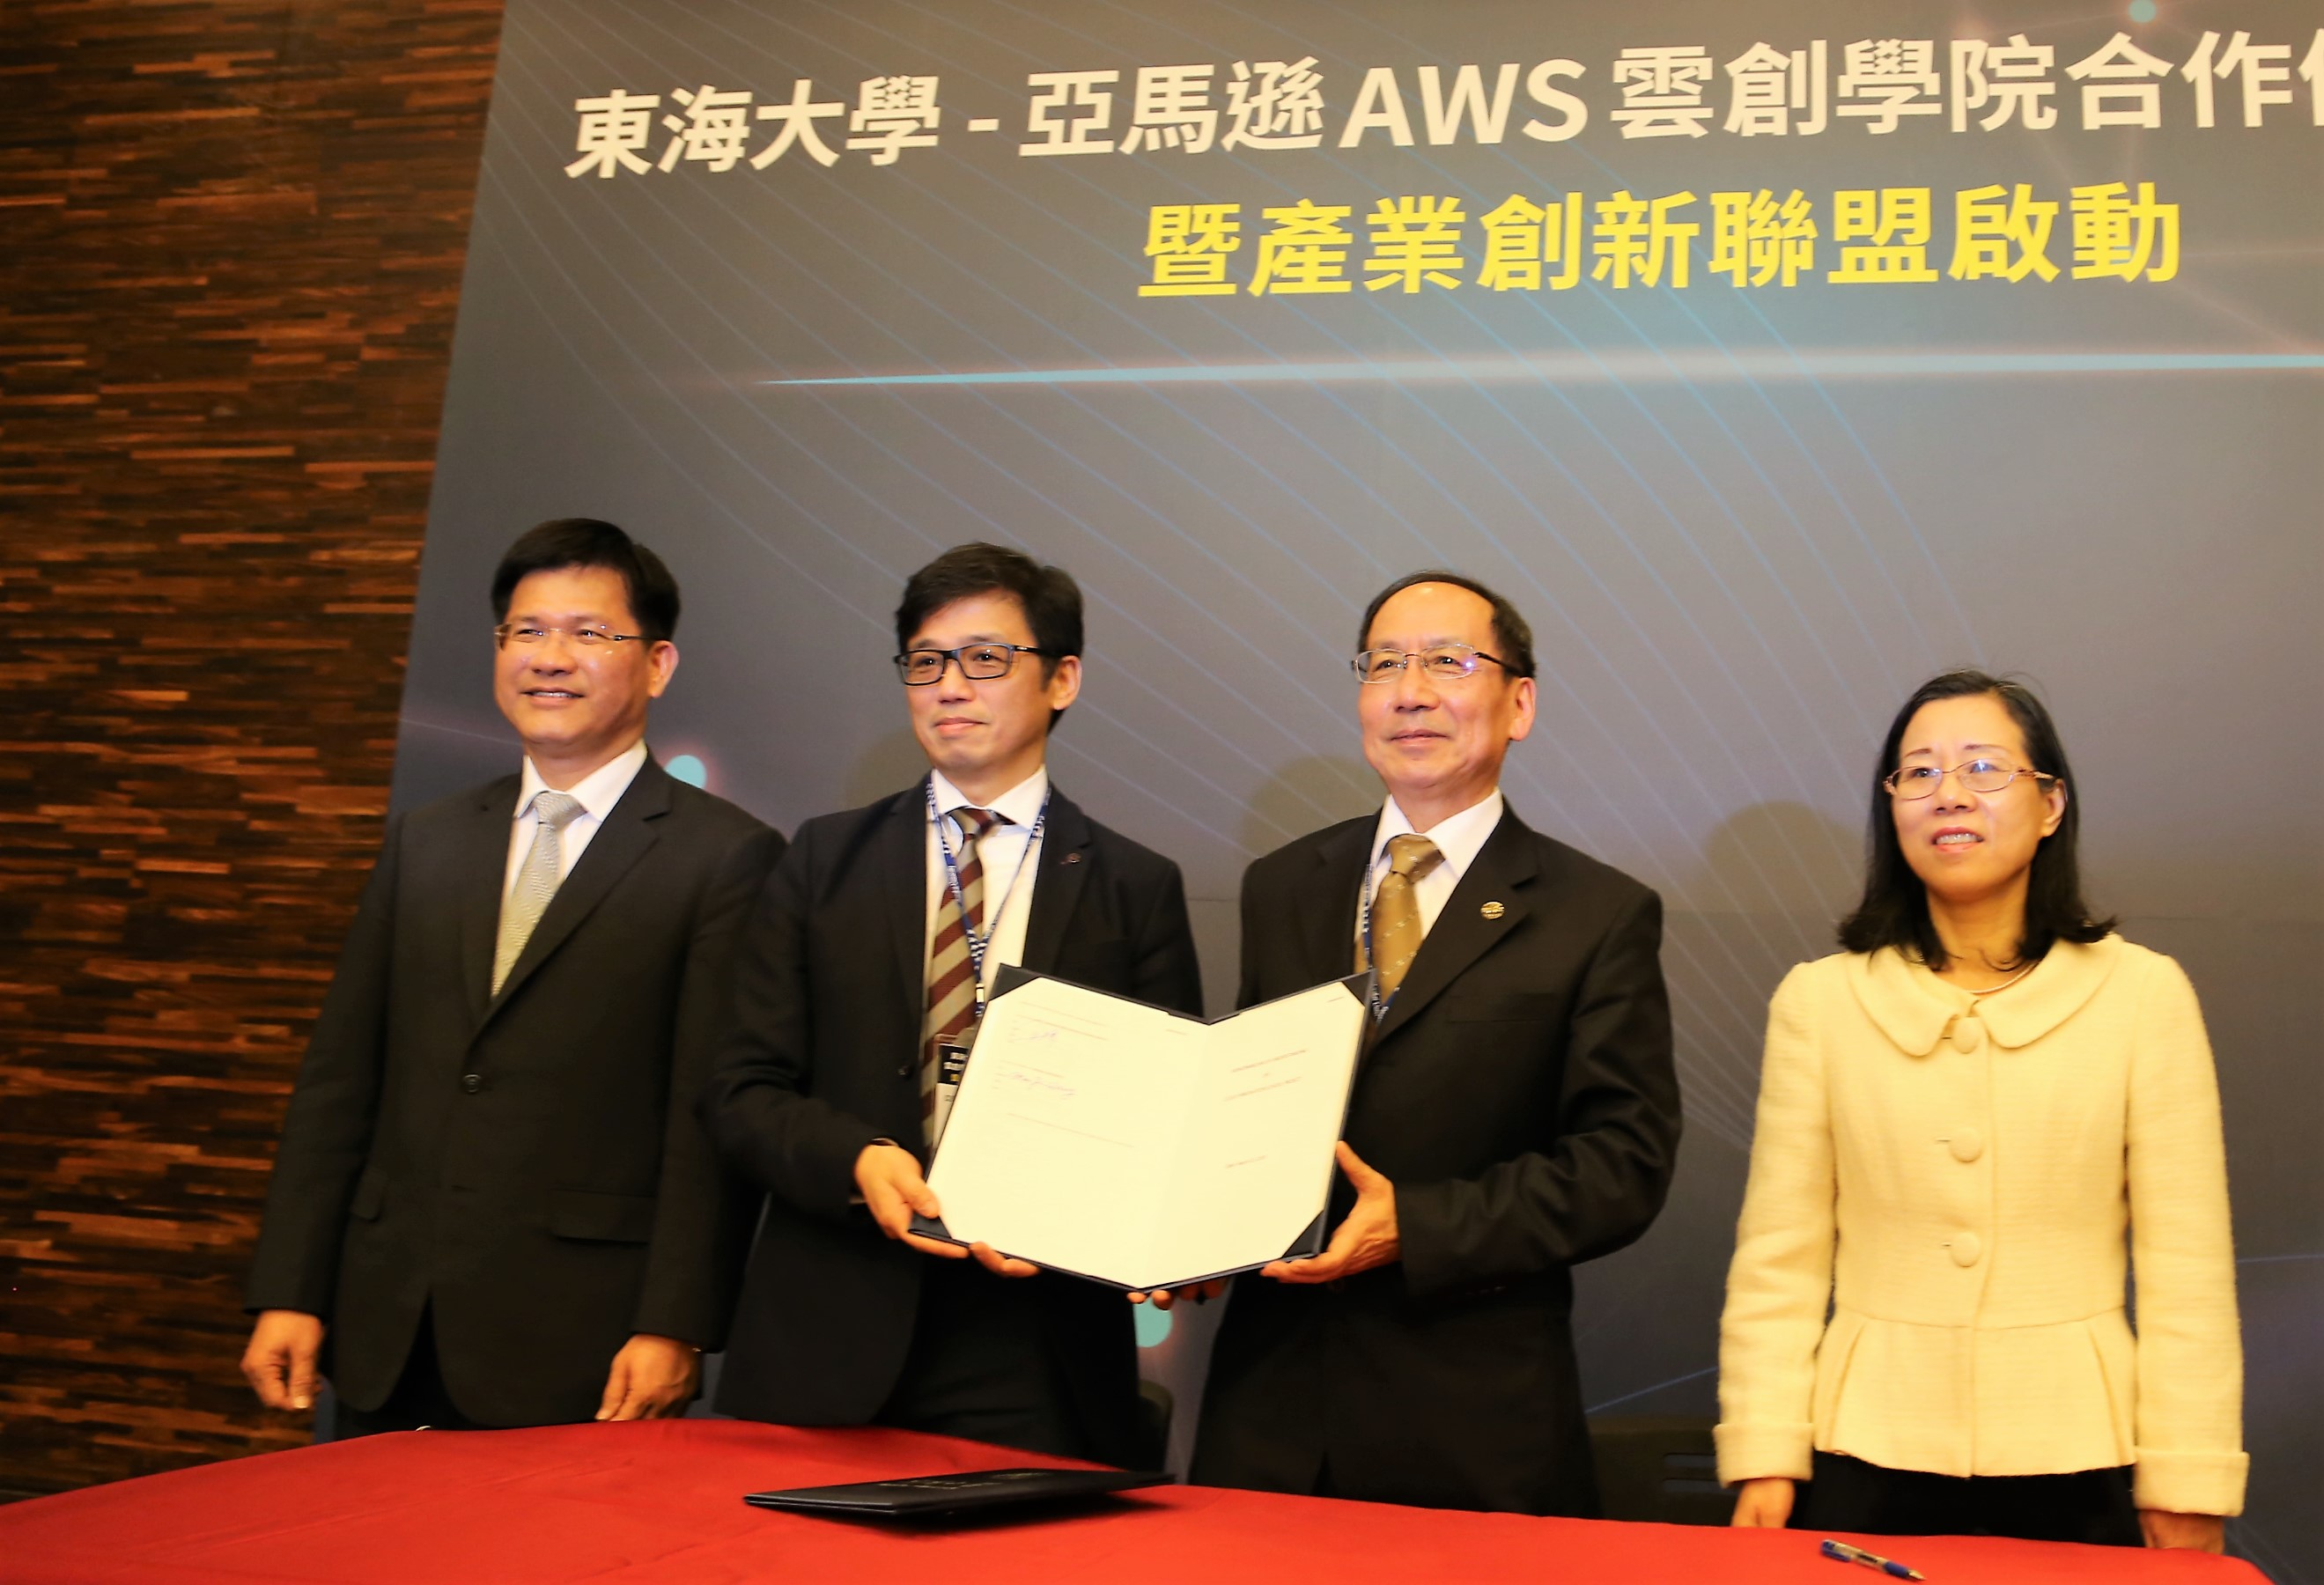 The MoU between Tunghai University and AWS was signed by Mao-Jiun Wang, President of Tunghai University, and Alex Yung, Corporate Vice President and Managing Director of AWS Greater China. Remarks were delivered by special guests Taichung Mayor Lin Chia-lung, Dr. Pau-Choo Chung, Director General of the Department of Information and Technology Education, Ministry of Education